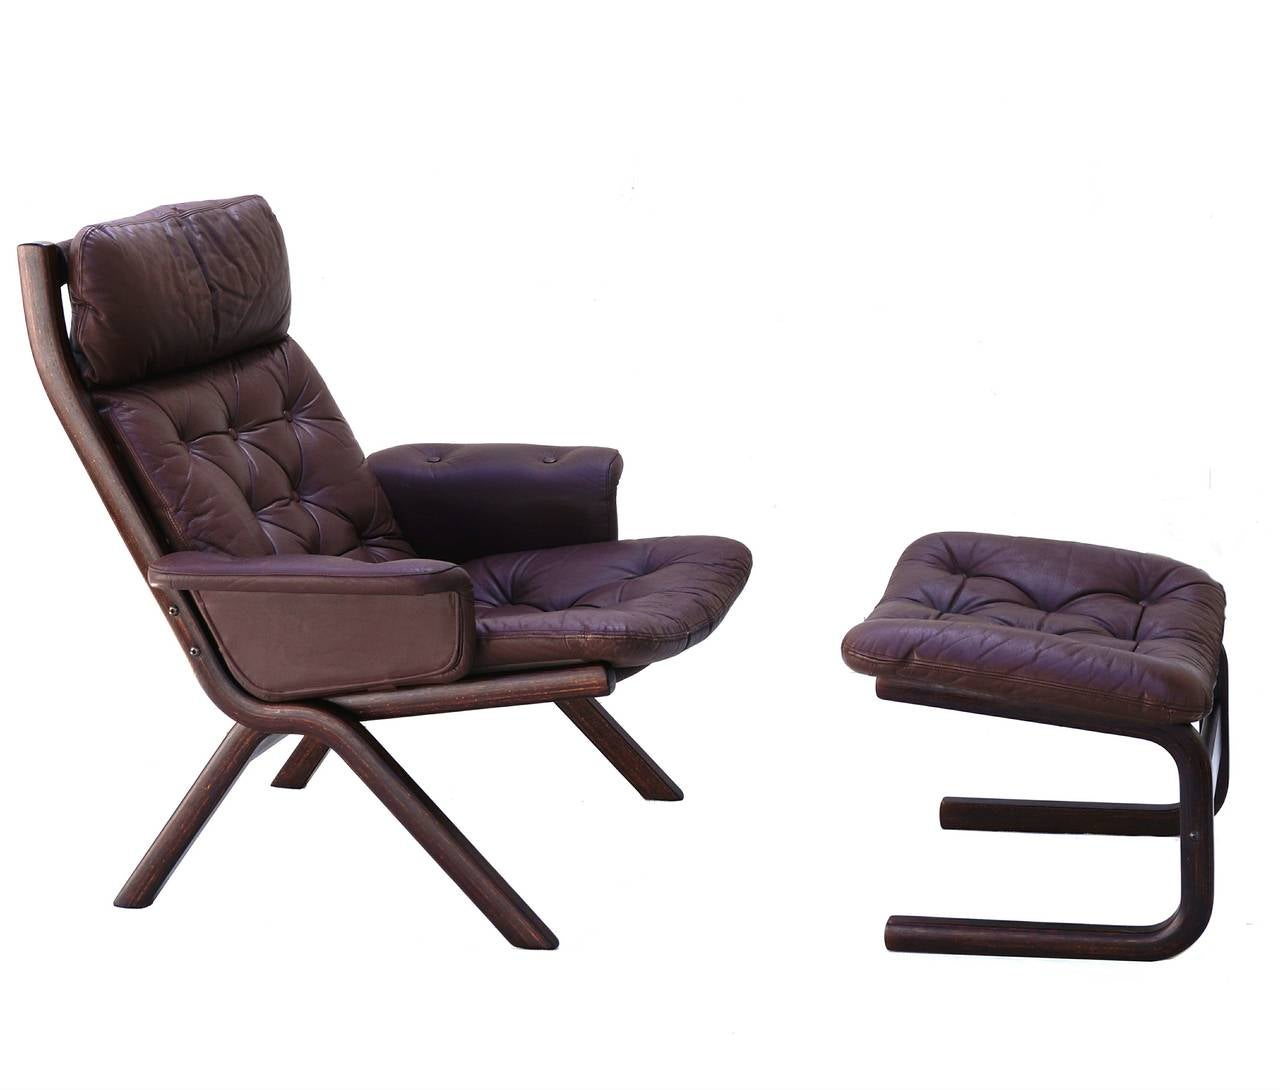 modern leather chair and ottoman patio bar covers danish sculptural sling lounge